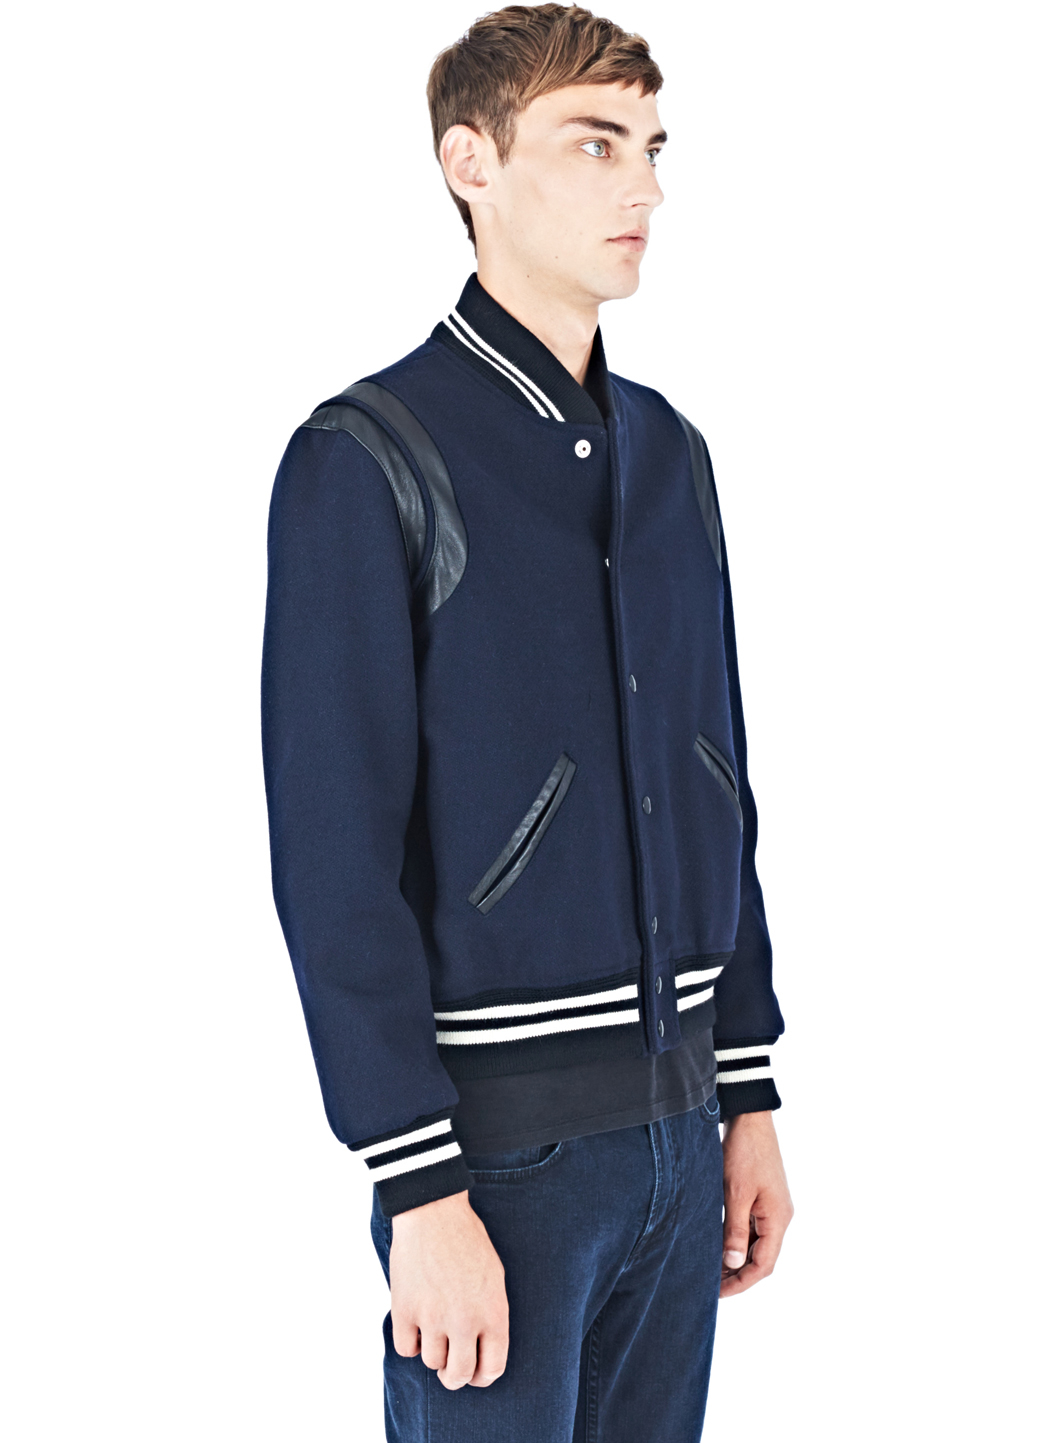 353d25ee25c Saint Laurent Men's Teddy Bomber Jacket In Navy in Blue for Men - Lyst